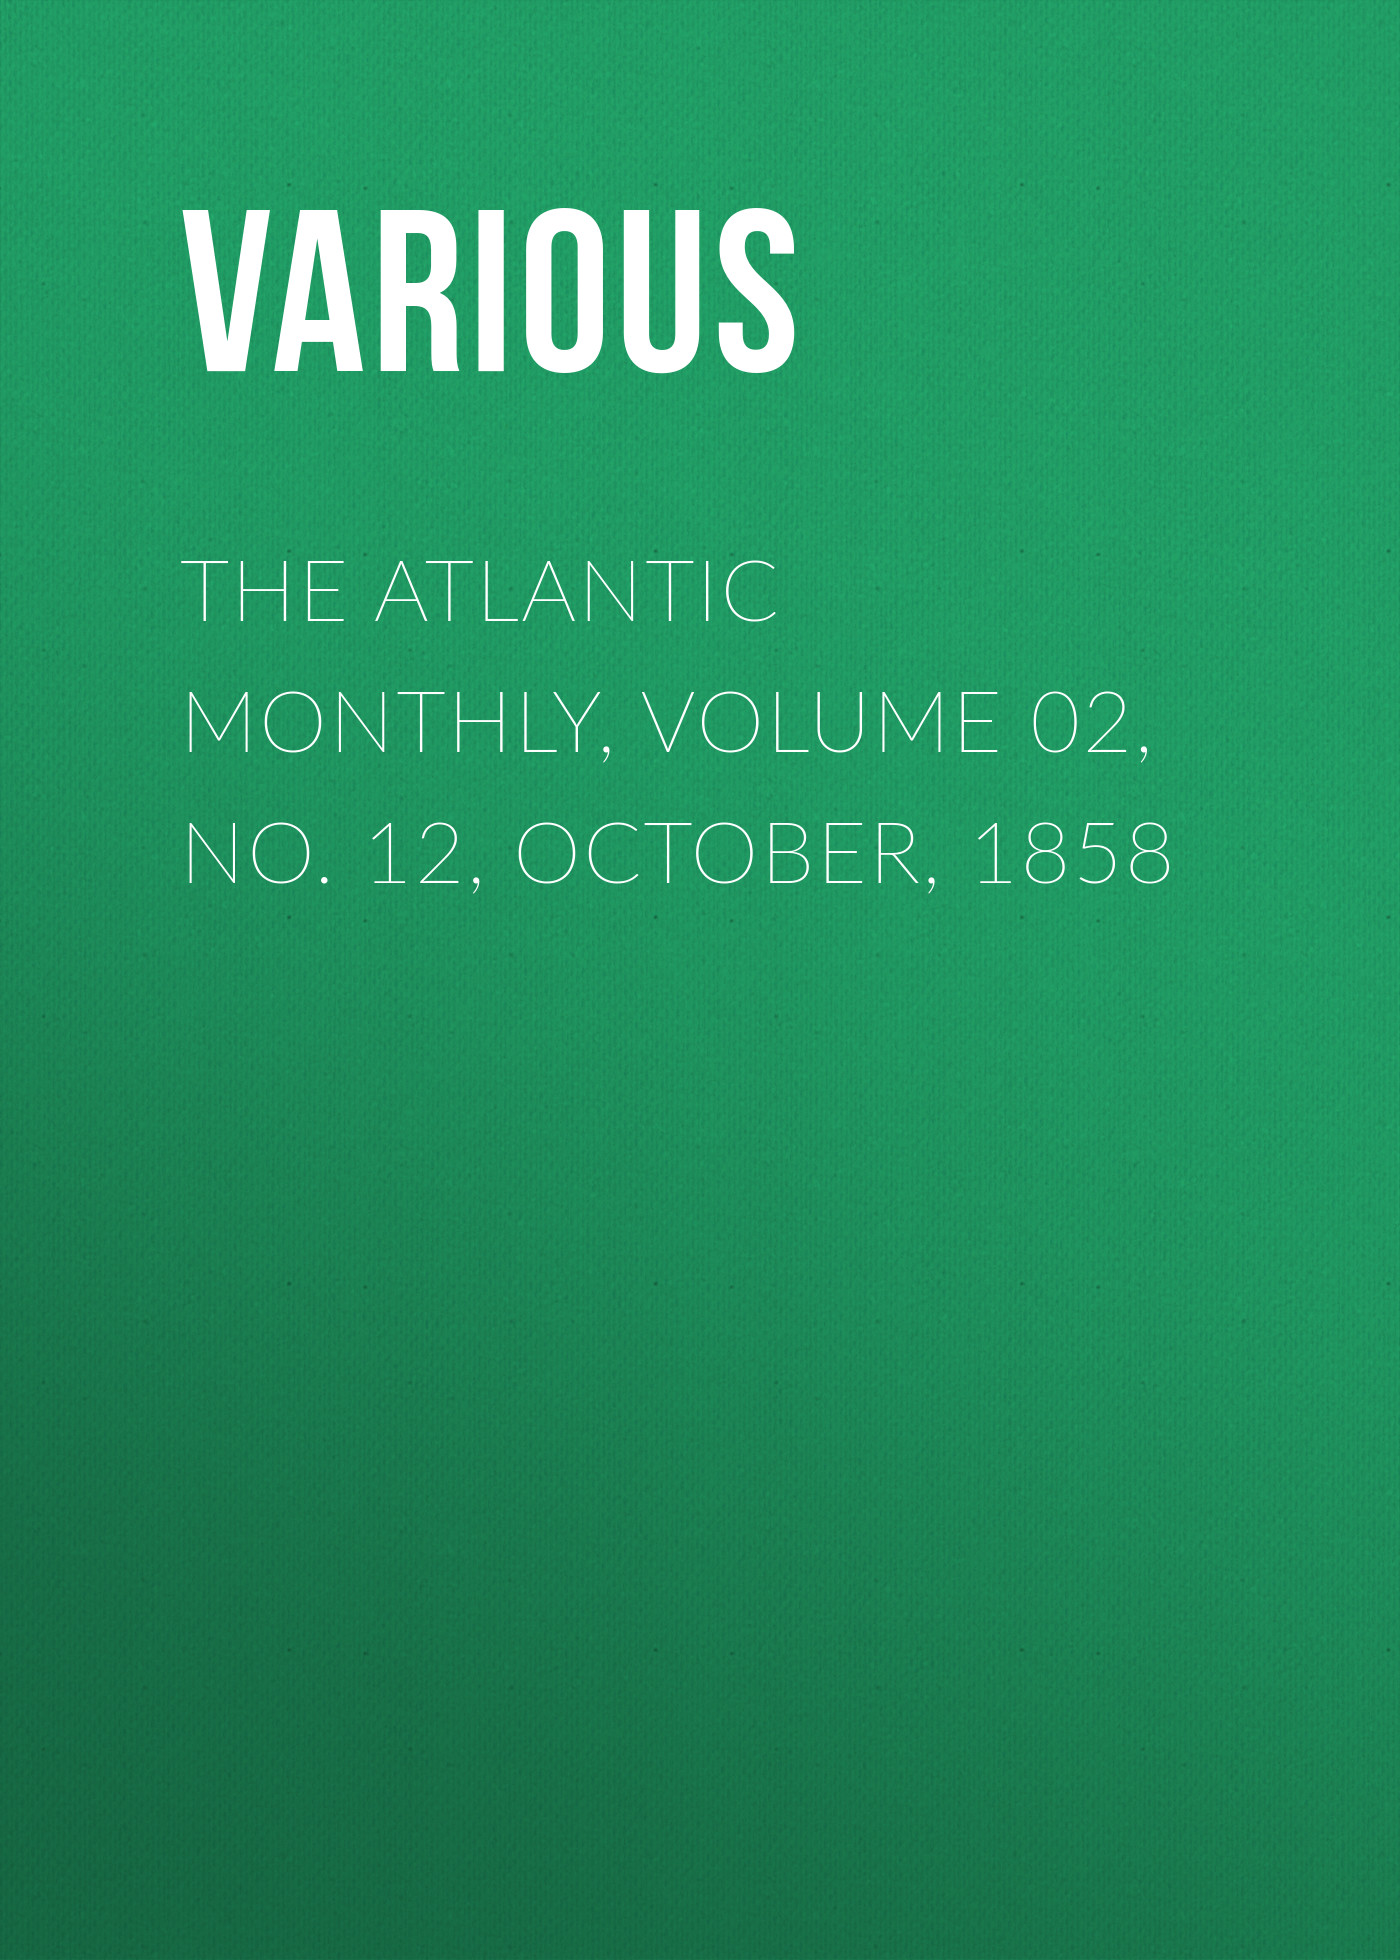 Various The Atlantic Monthly, Volume 02, No. 12, October, 1858 various the atlantic monthly volume 02 no 10 august 1858